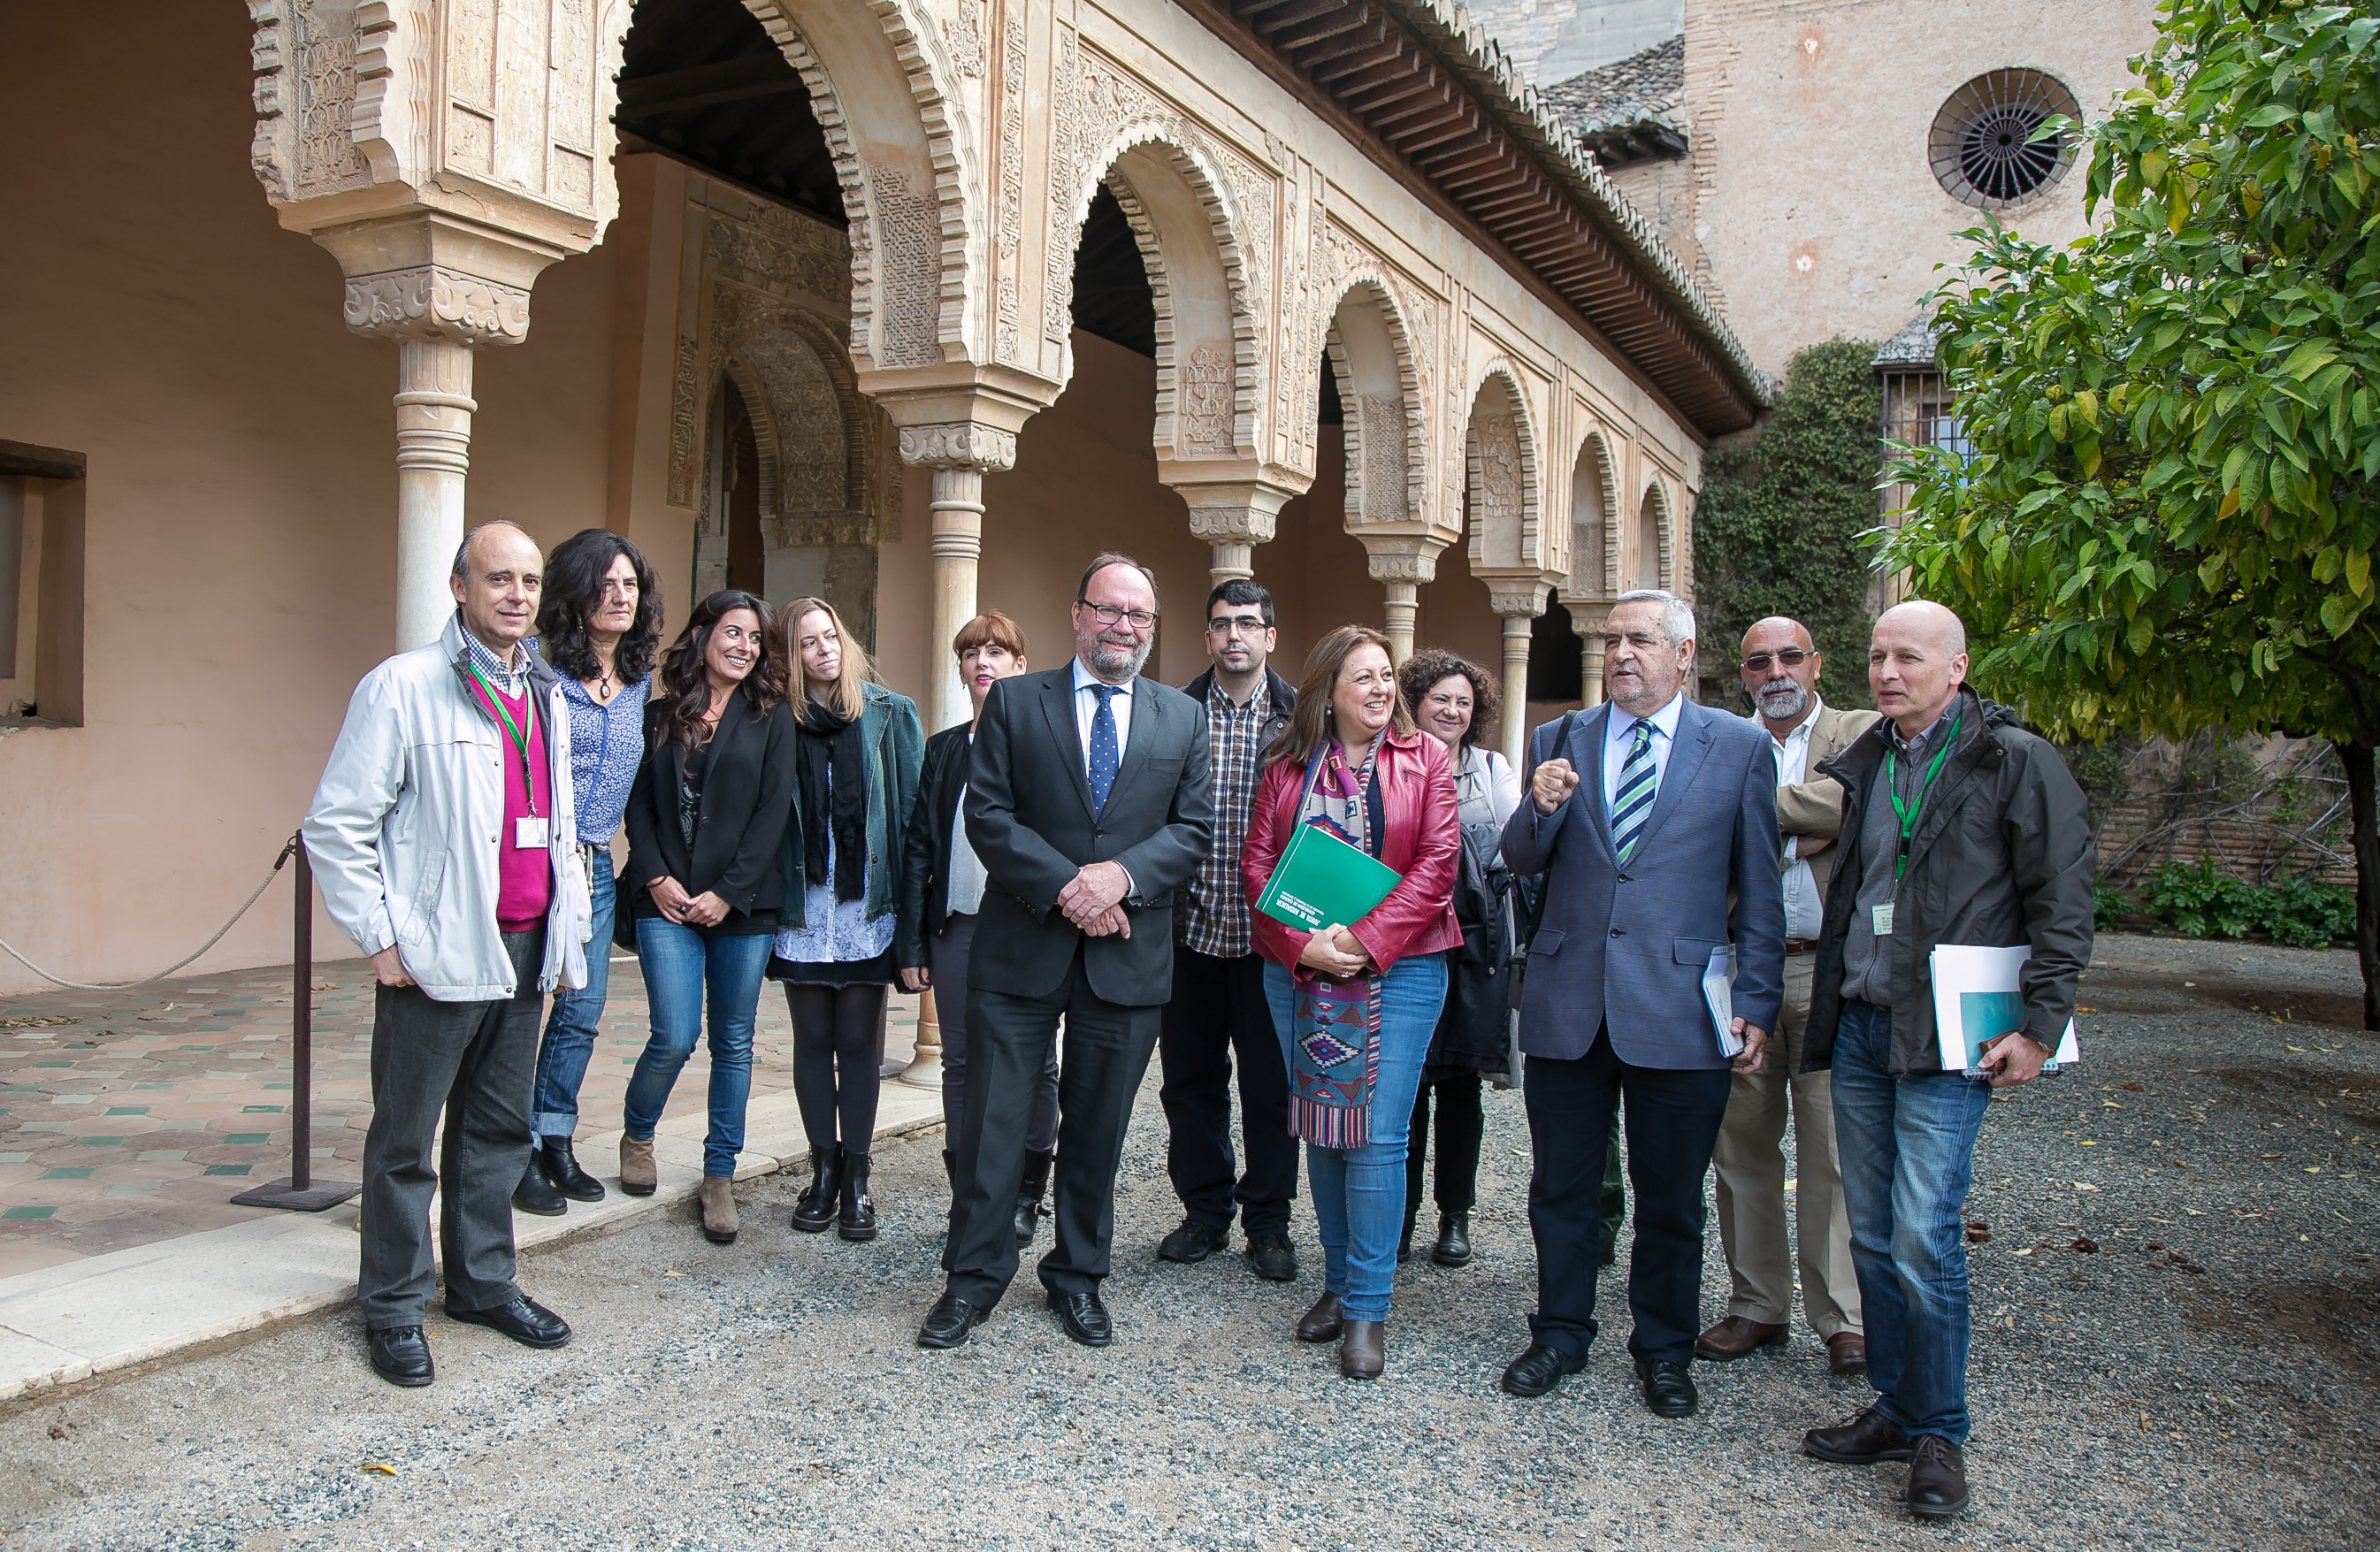 The Alhambra presents its innovative, scientific Archaeology Plan for the 21st Century